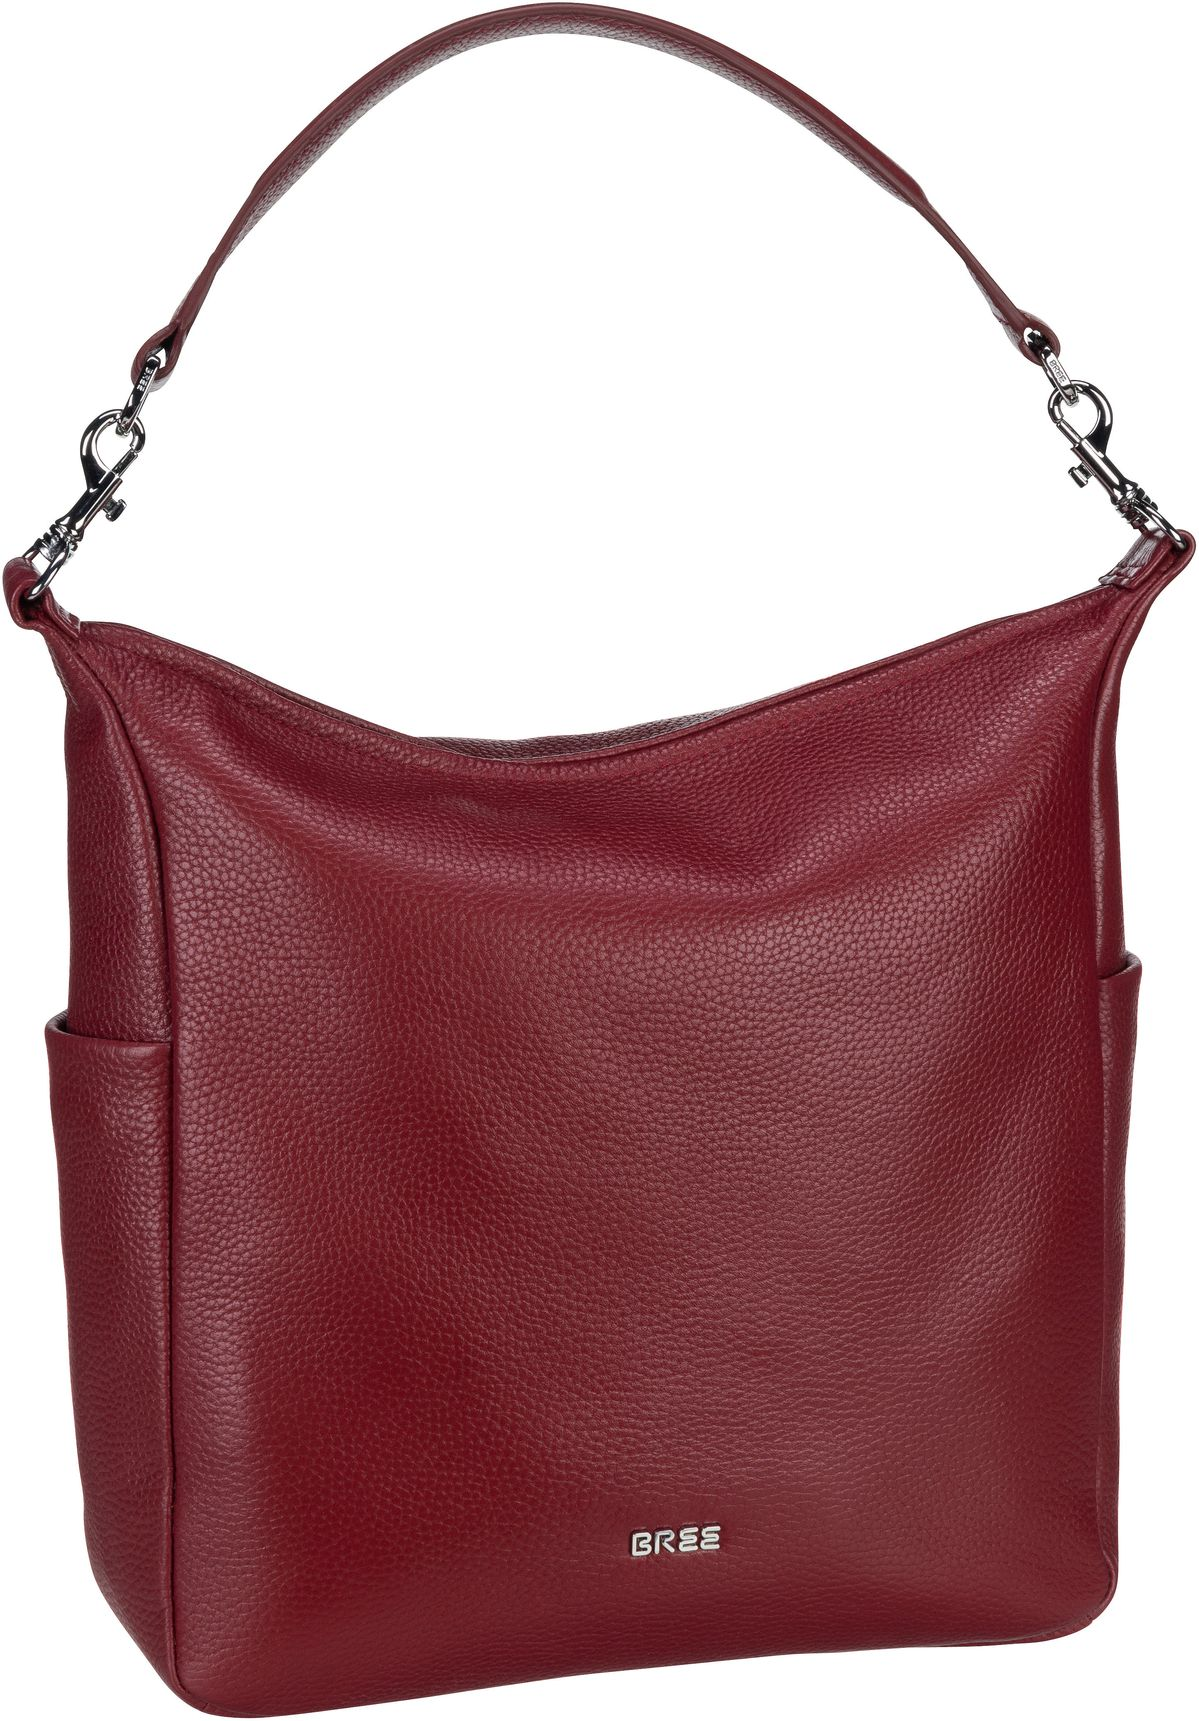 Handtasche Nola 10 Dark Red